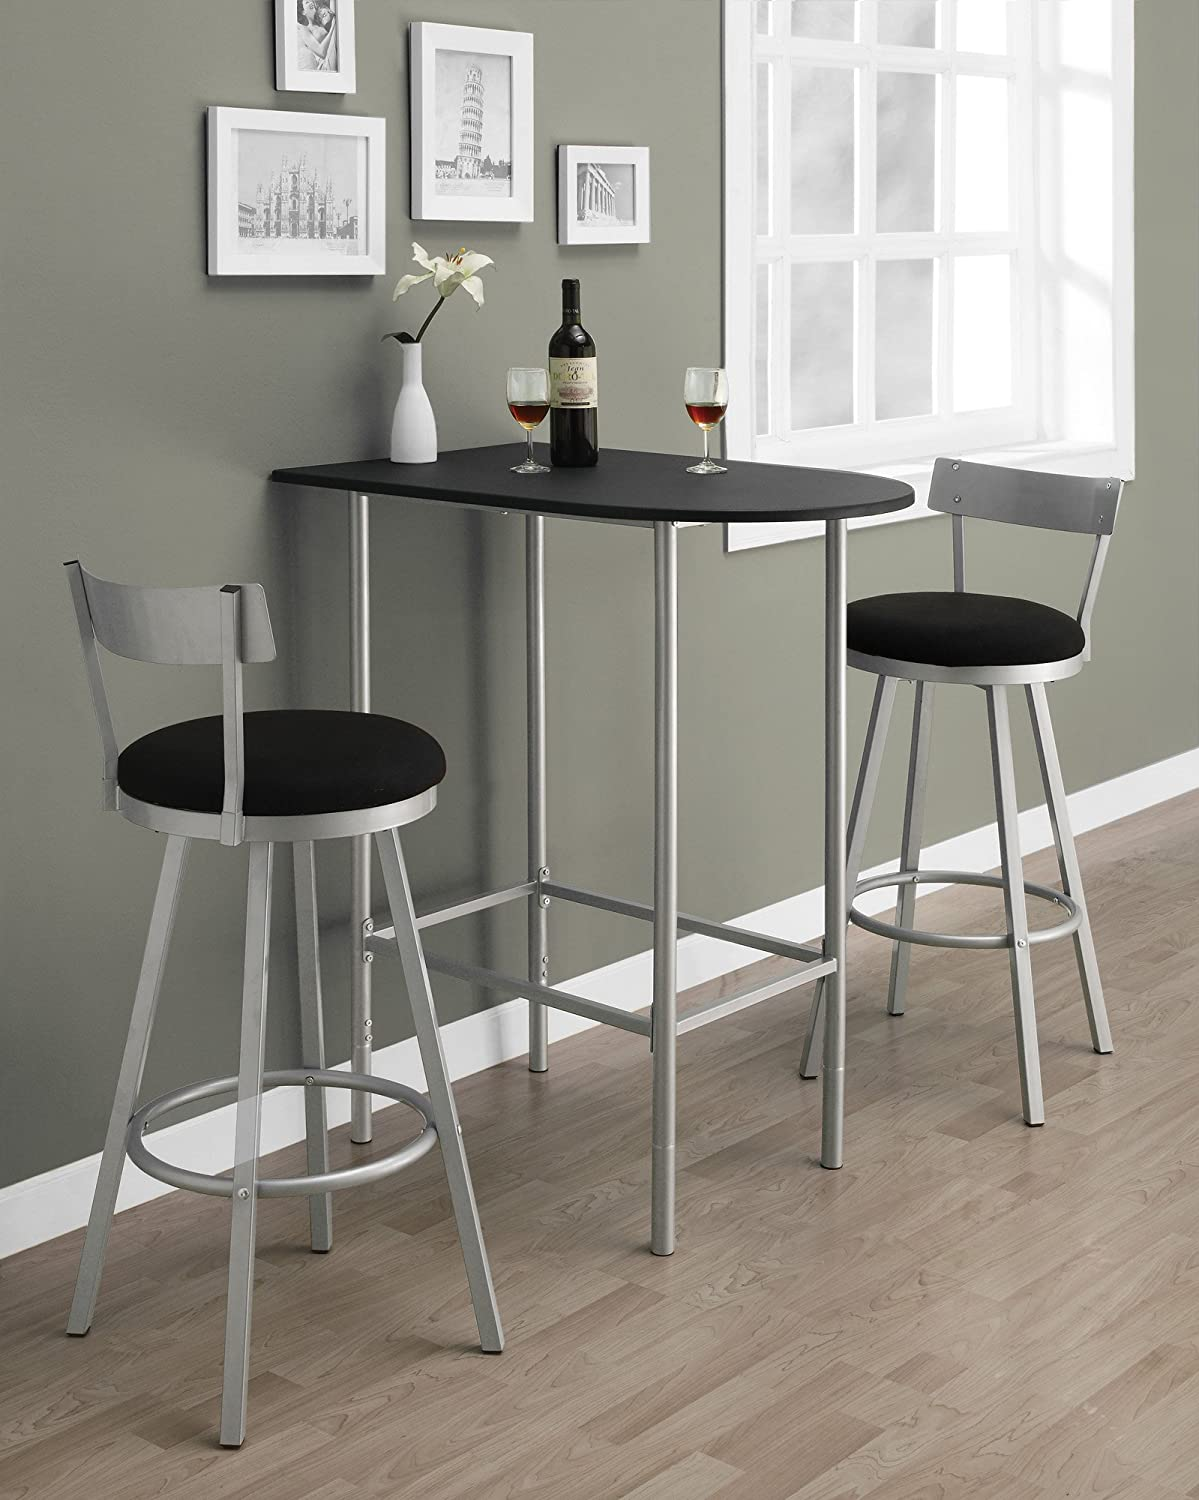 amazoncom monarch specialties space saver bar table 24 inch by 36 inch blacksilver metal kitchen dining - Kitchen Table With Bar Stools